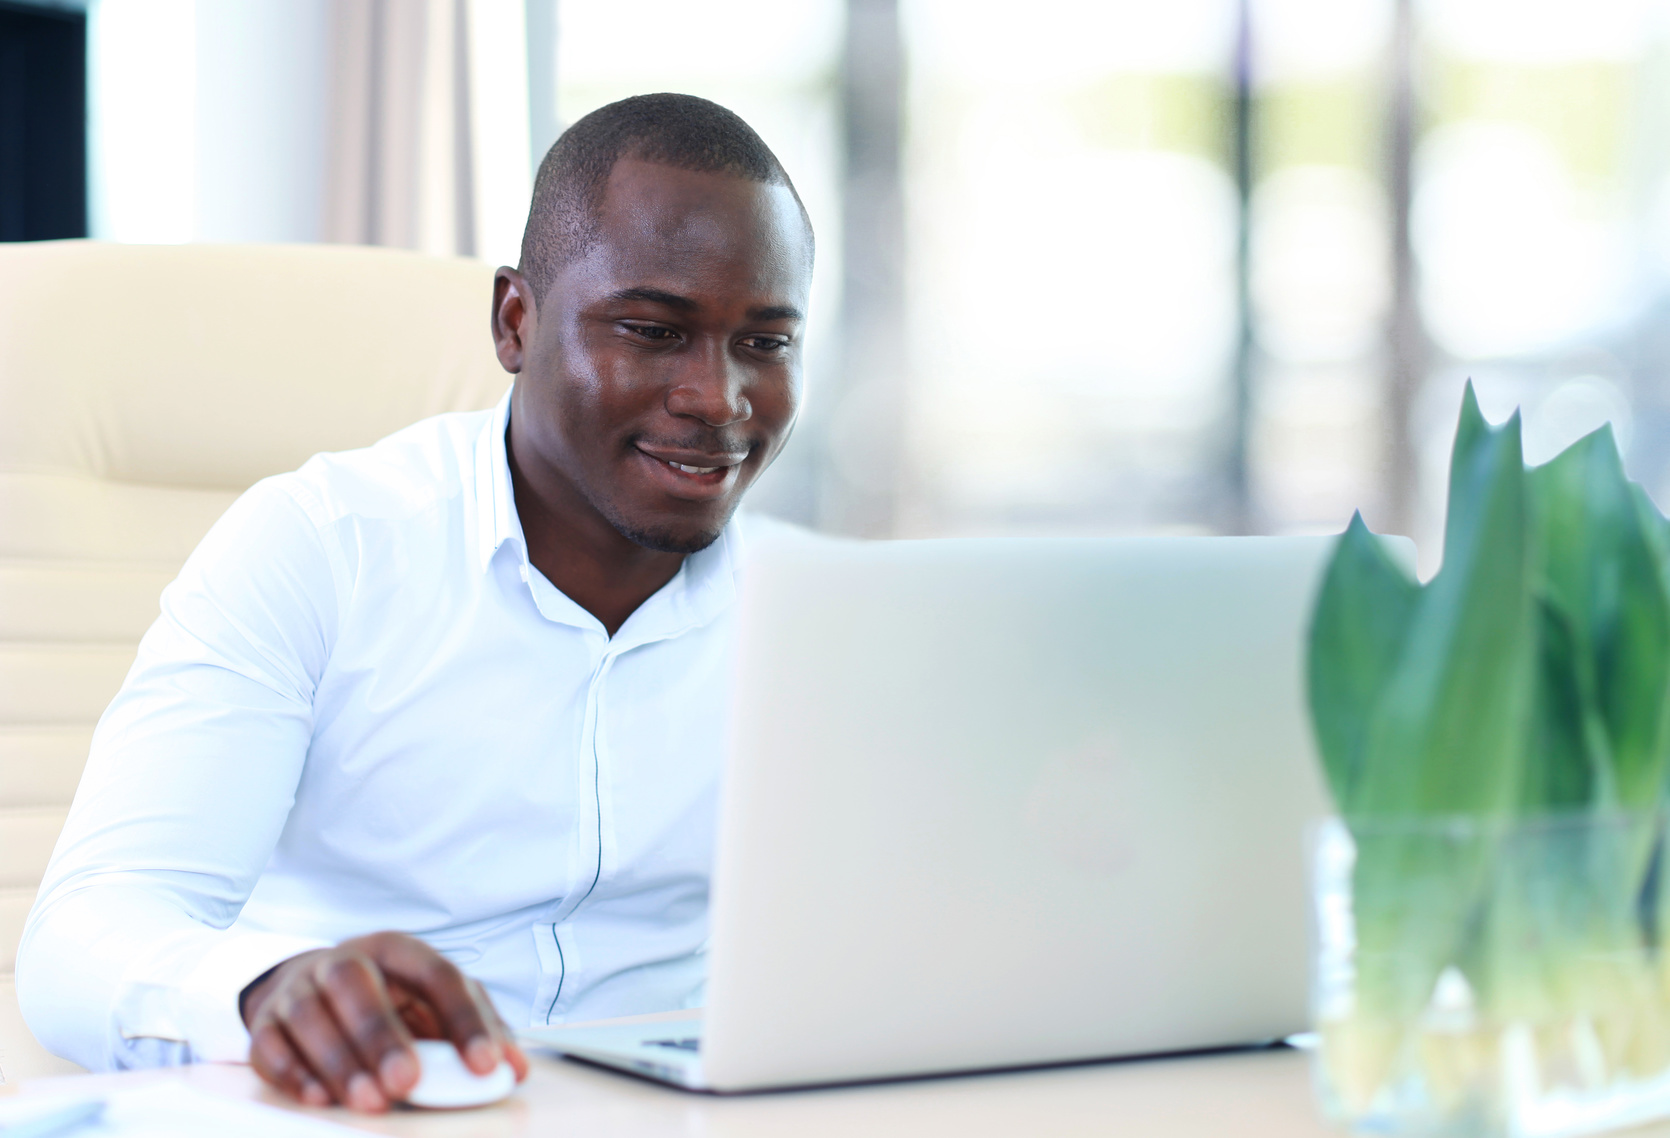 Image of african american businessman working on his laptop.